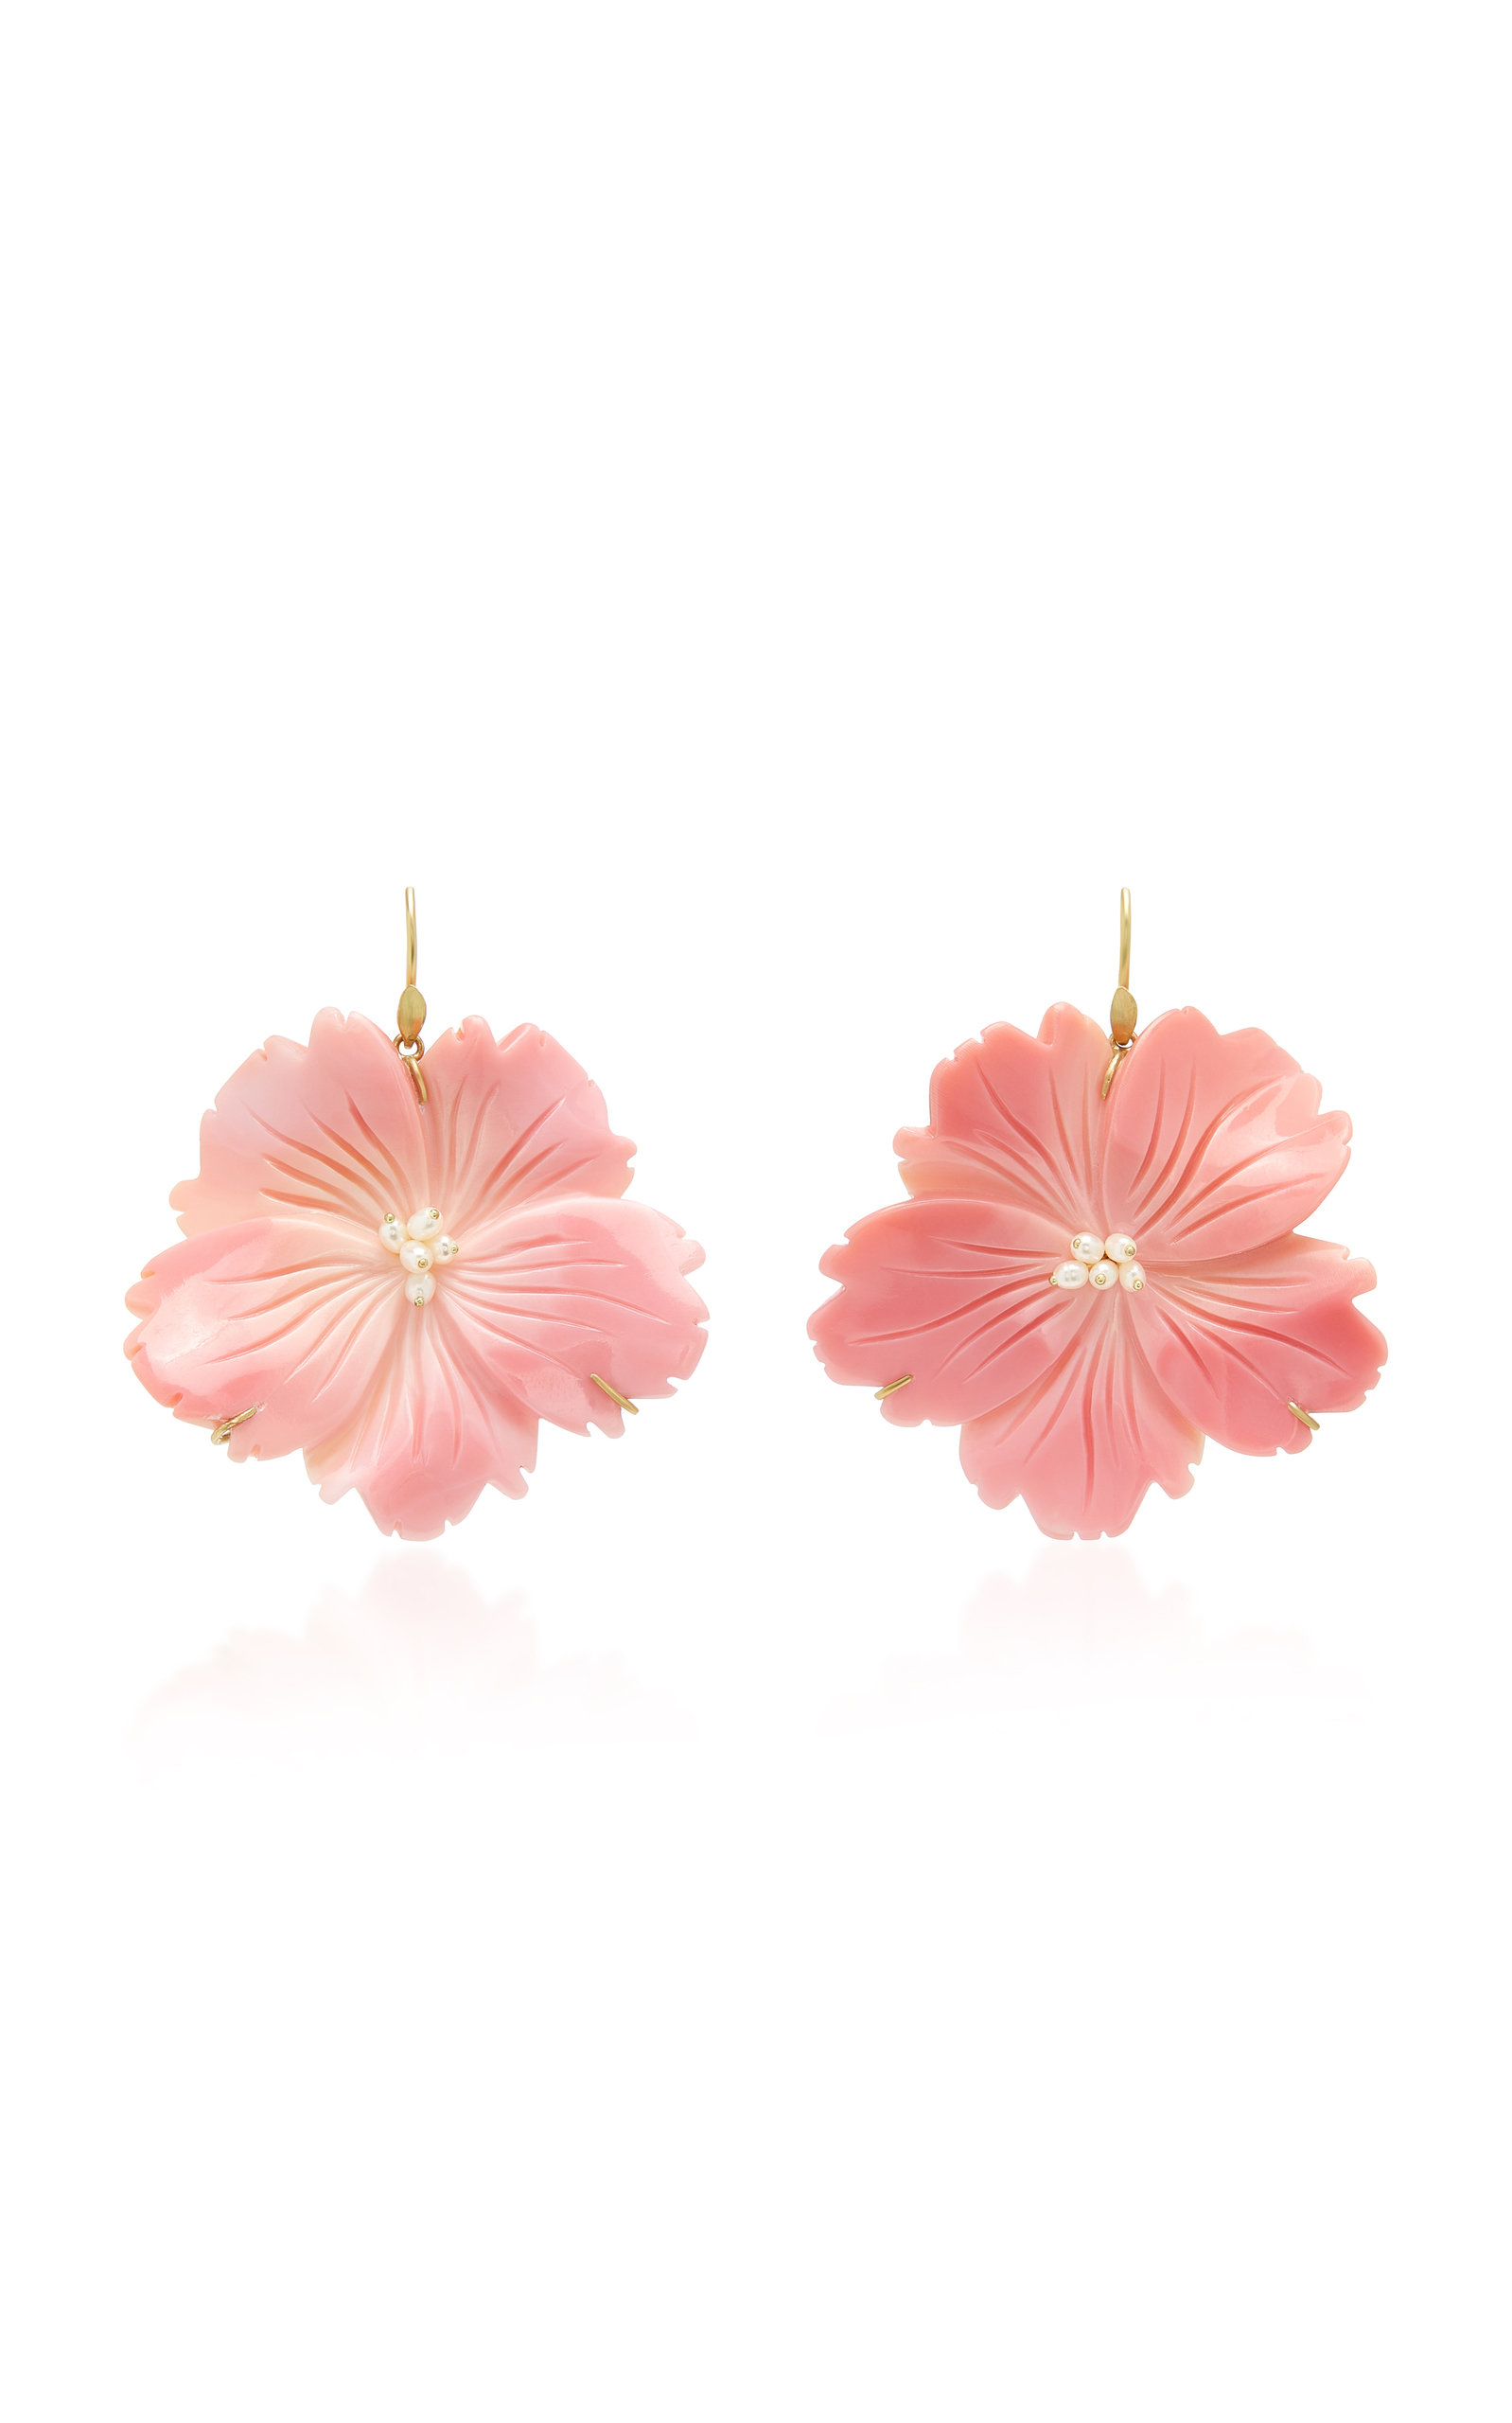 ANNETTE FERDINANDSEN M'O Exclusive: Wild Rose Pink Conch Shell Earring